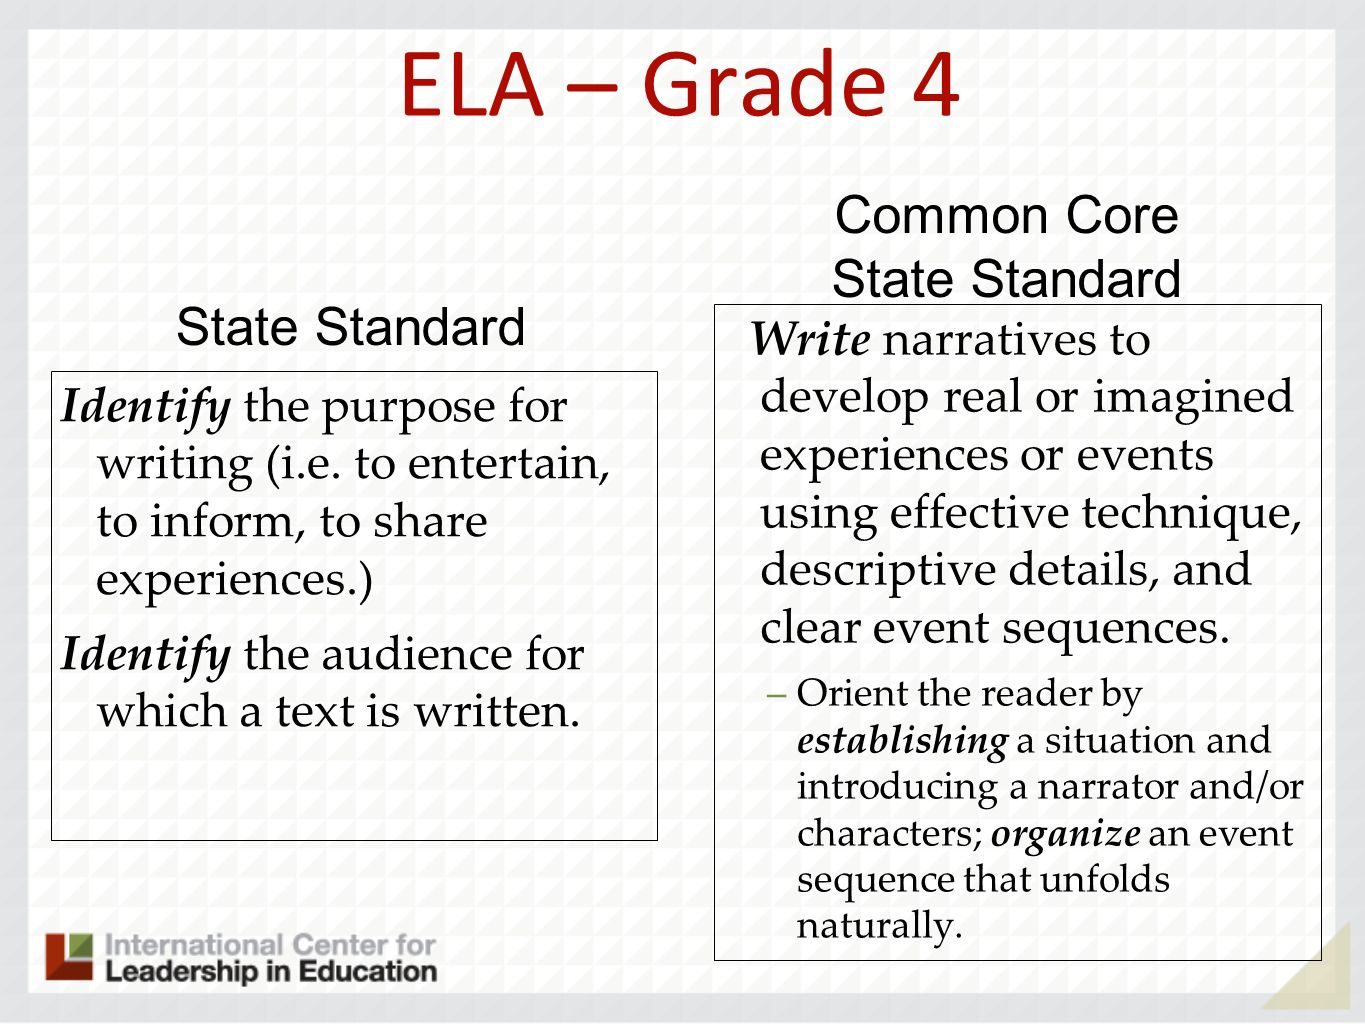 ELA – Grade 4 Identify the purpose for writing (i.e. to entertain, to inform, to share experiences.) Identify the audience for which a text is written